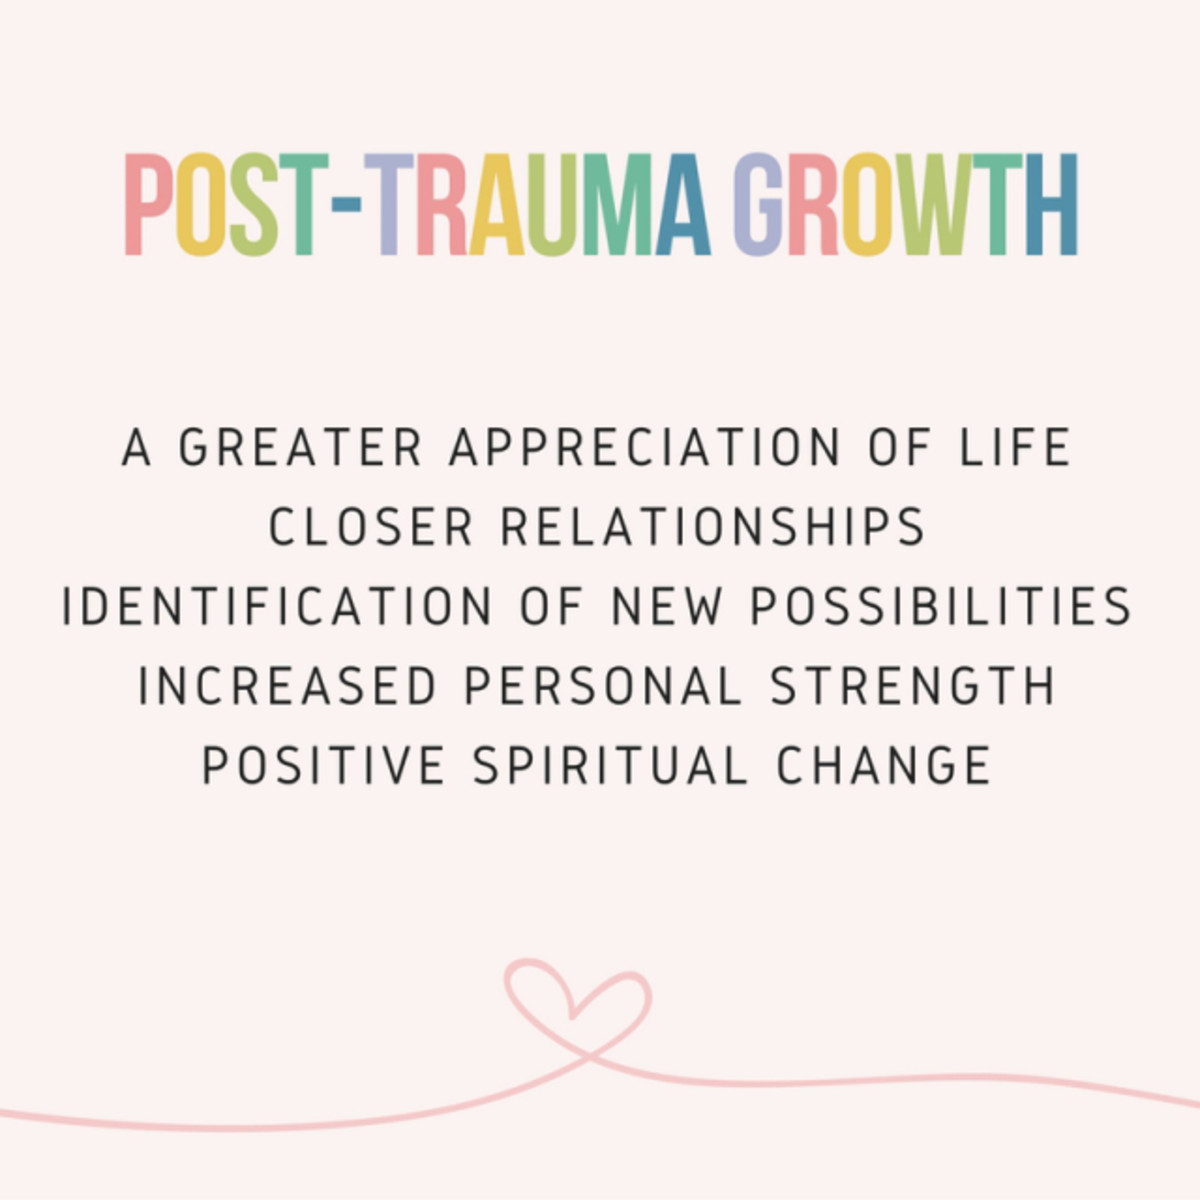 Post Traumatic Growth: The Dawn after Night